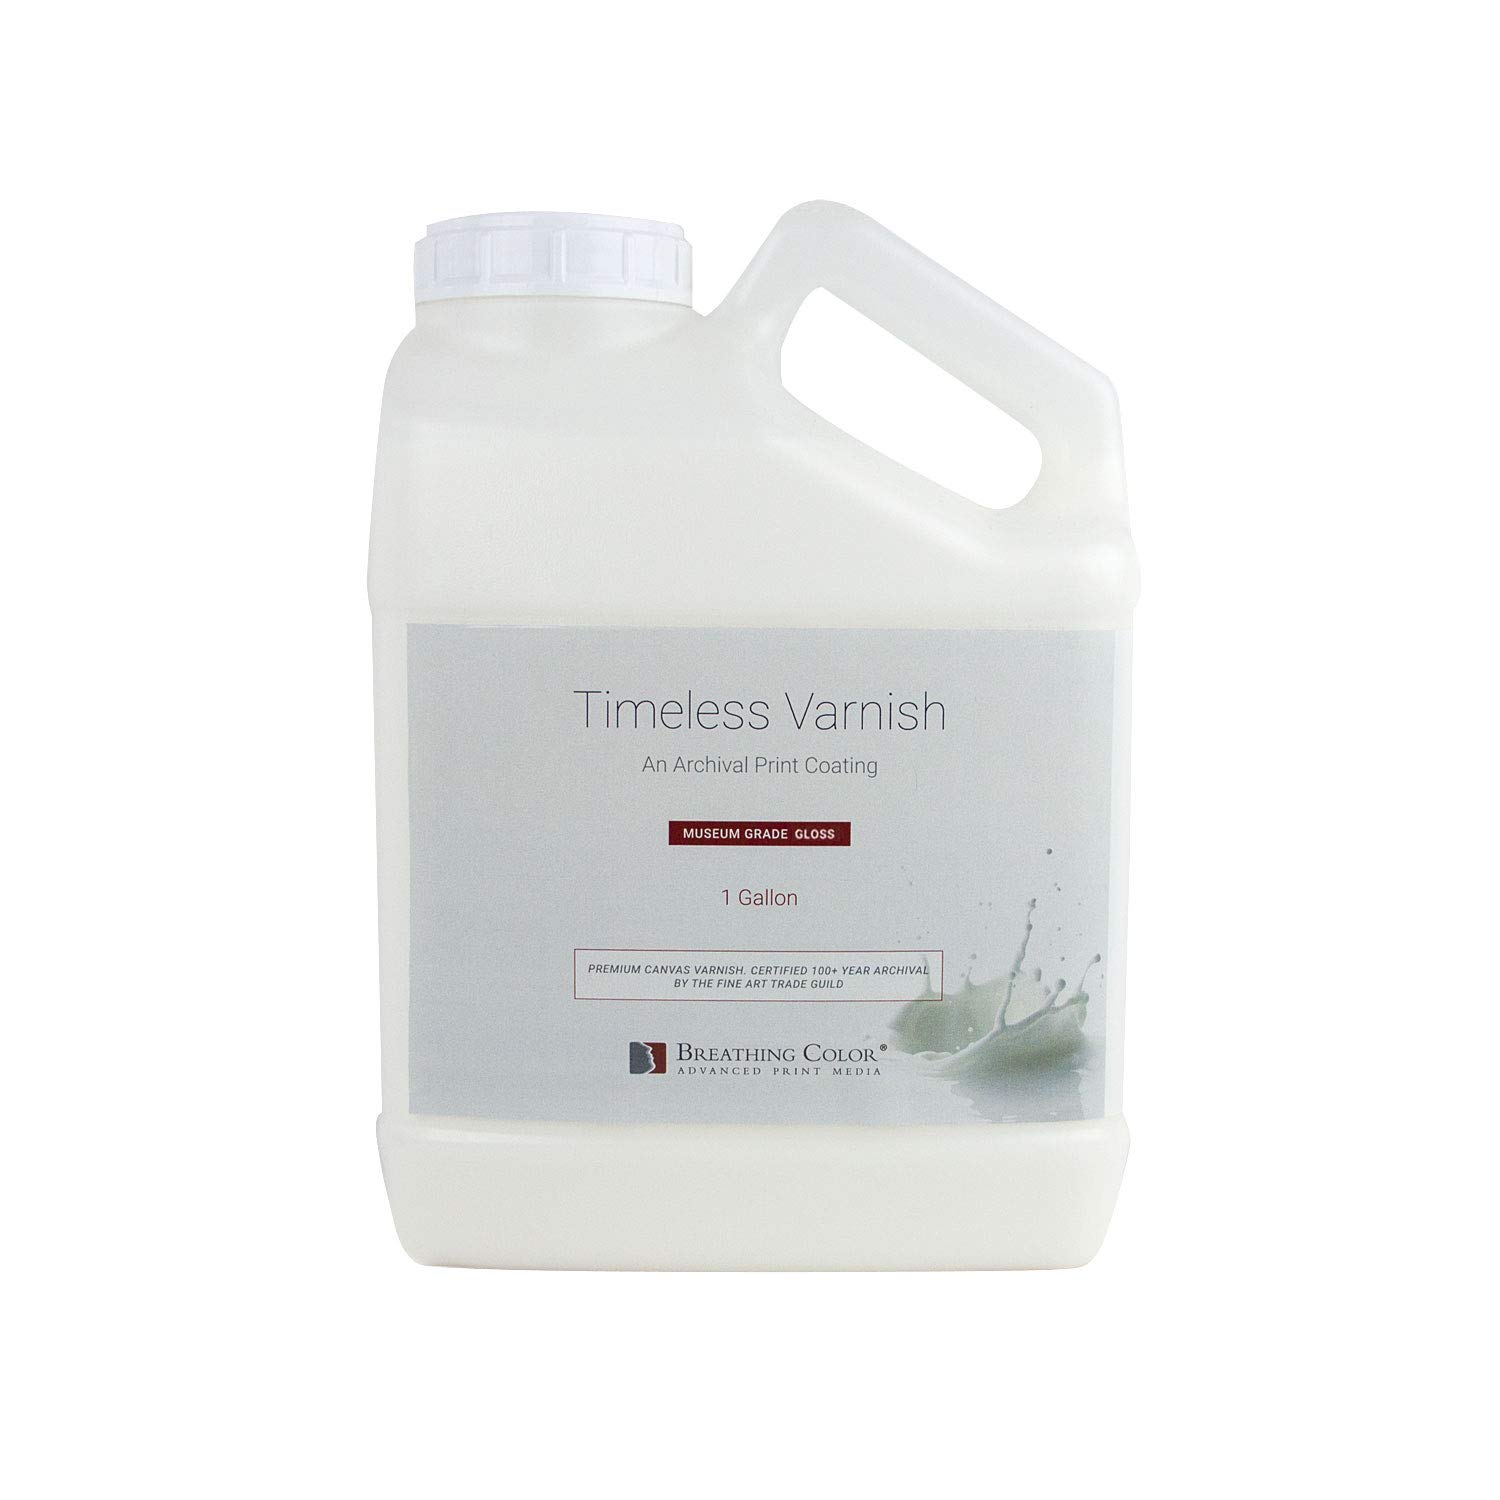 Timeless Archival Print Varnish - 1 Gallon, Glossy Finish, Highest Quality Canvas Coating, Water Based UV Protection, 100+ Years Certified Archival